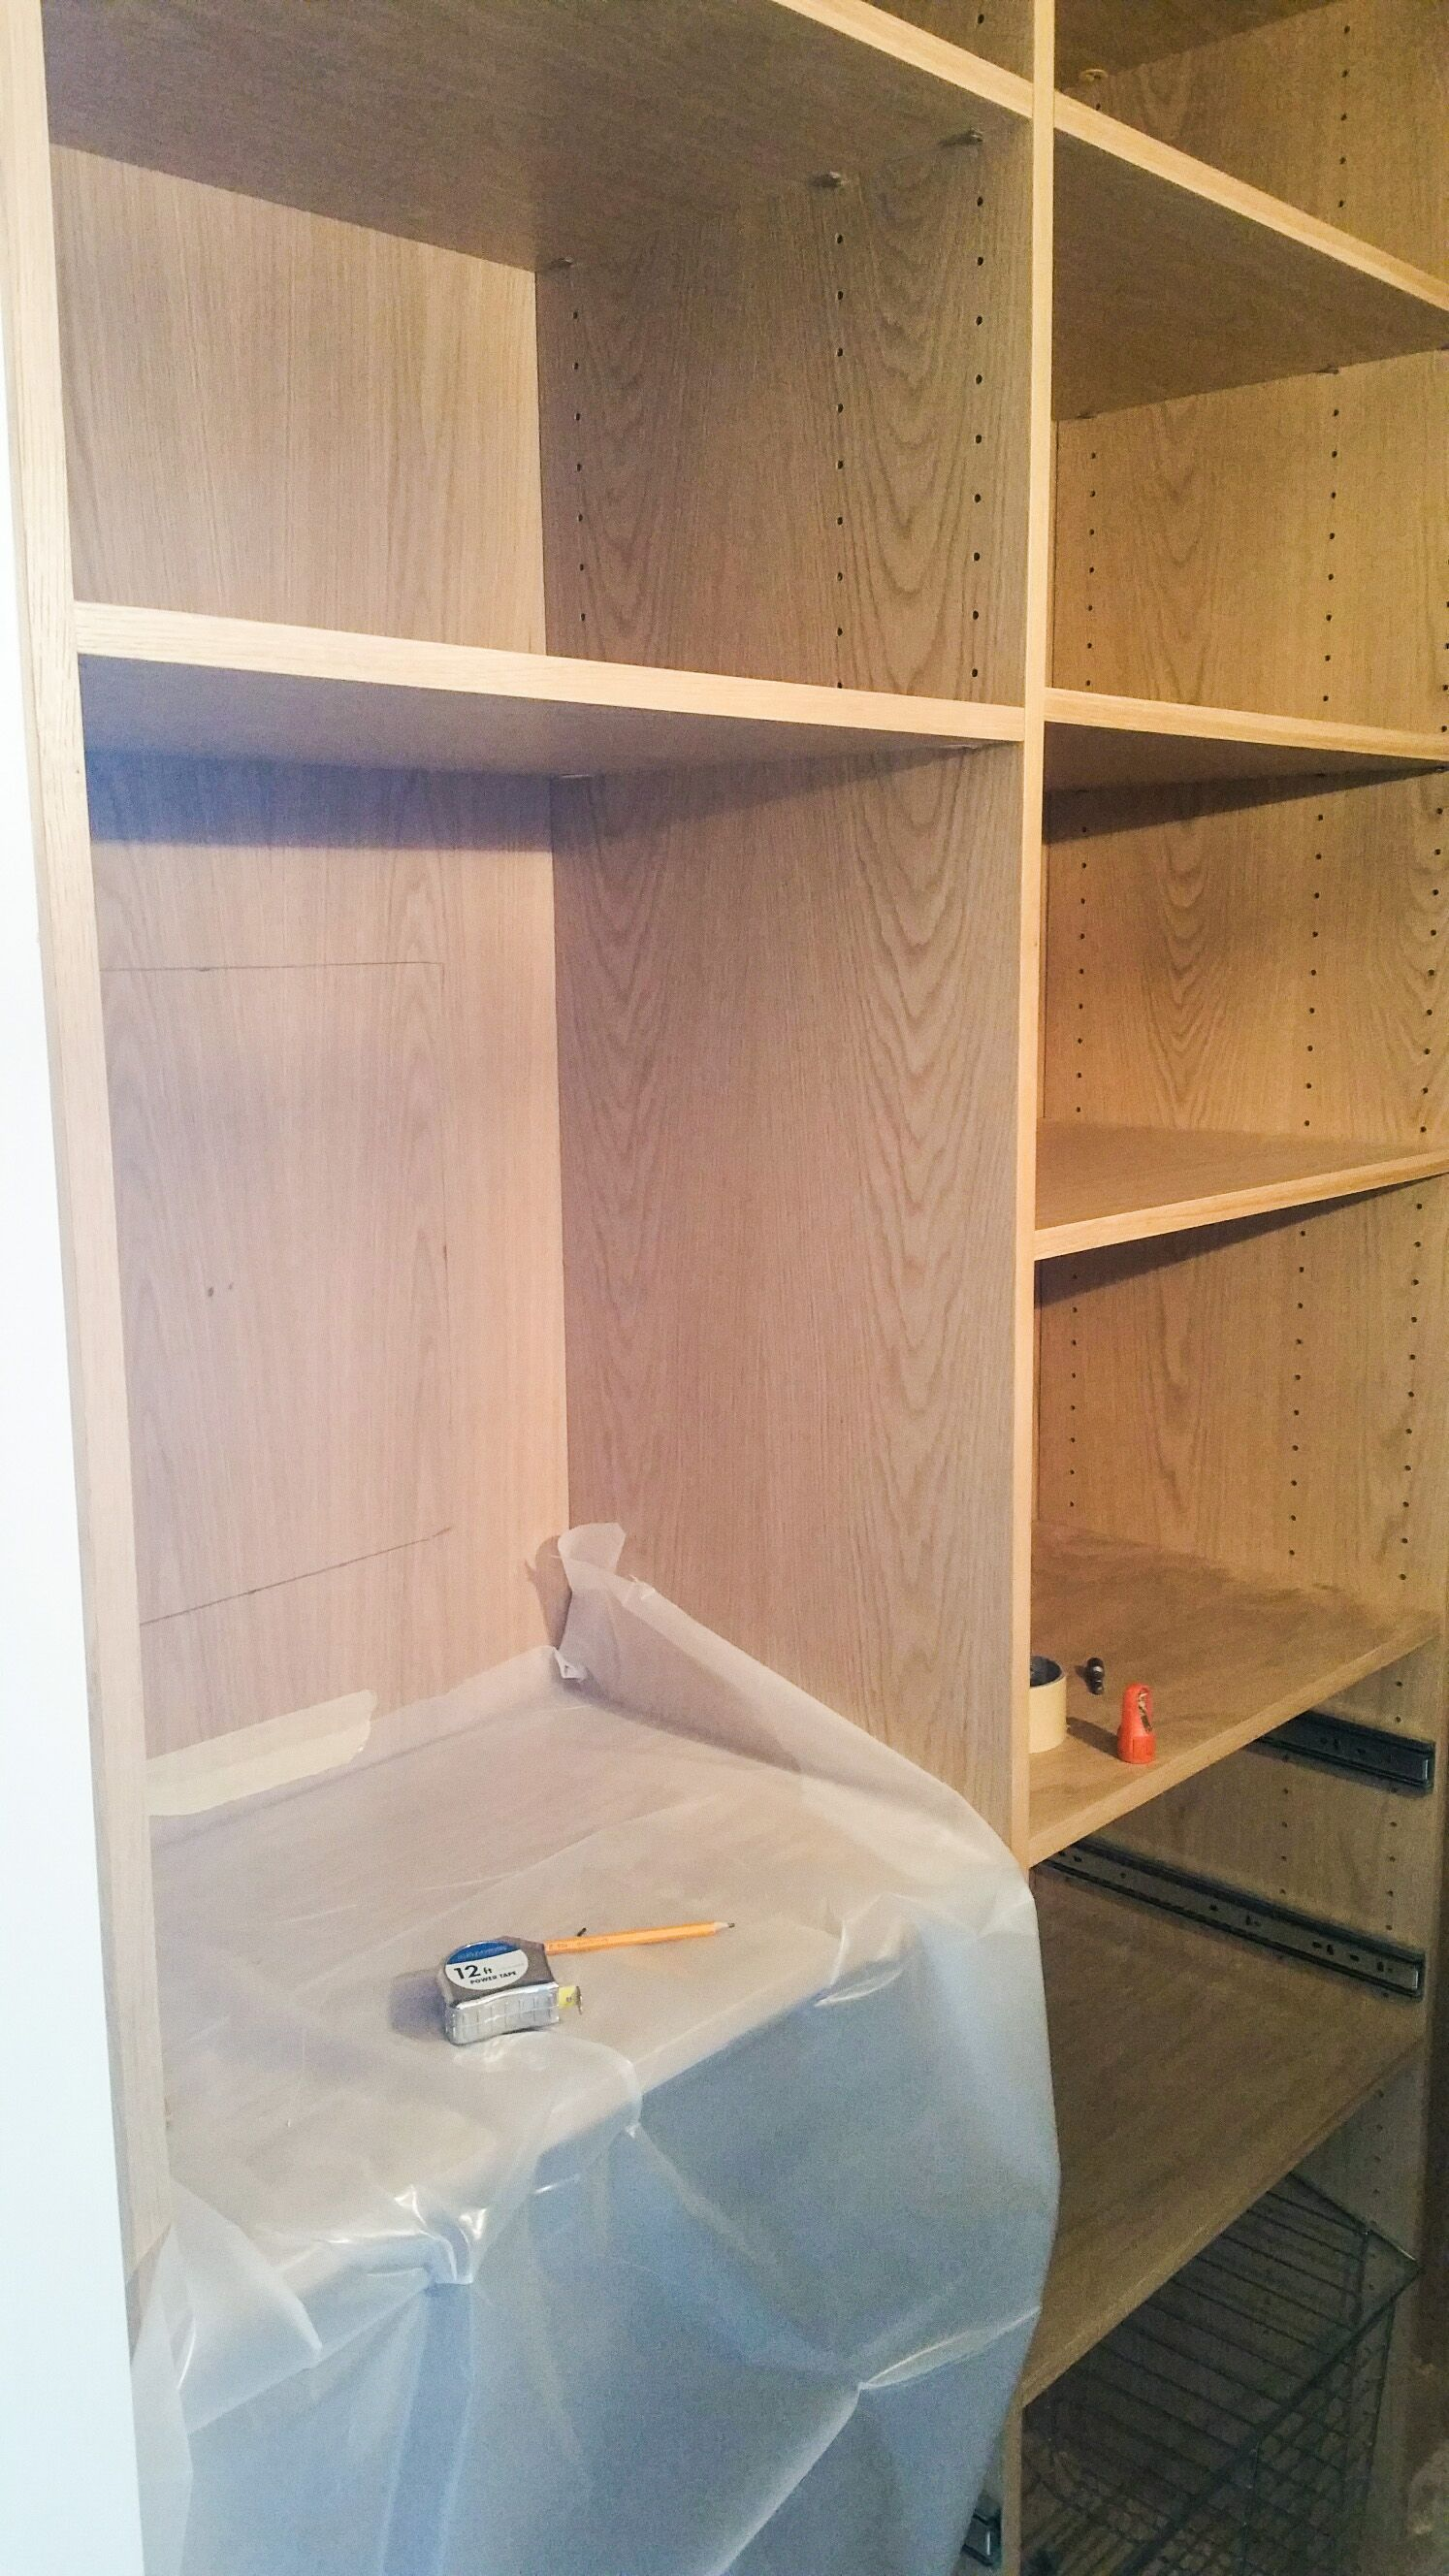 Planning A Closet Remodel? Consider Having Your Designer Or Contractor  Include A Wall Safe In